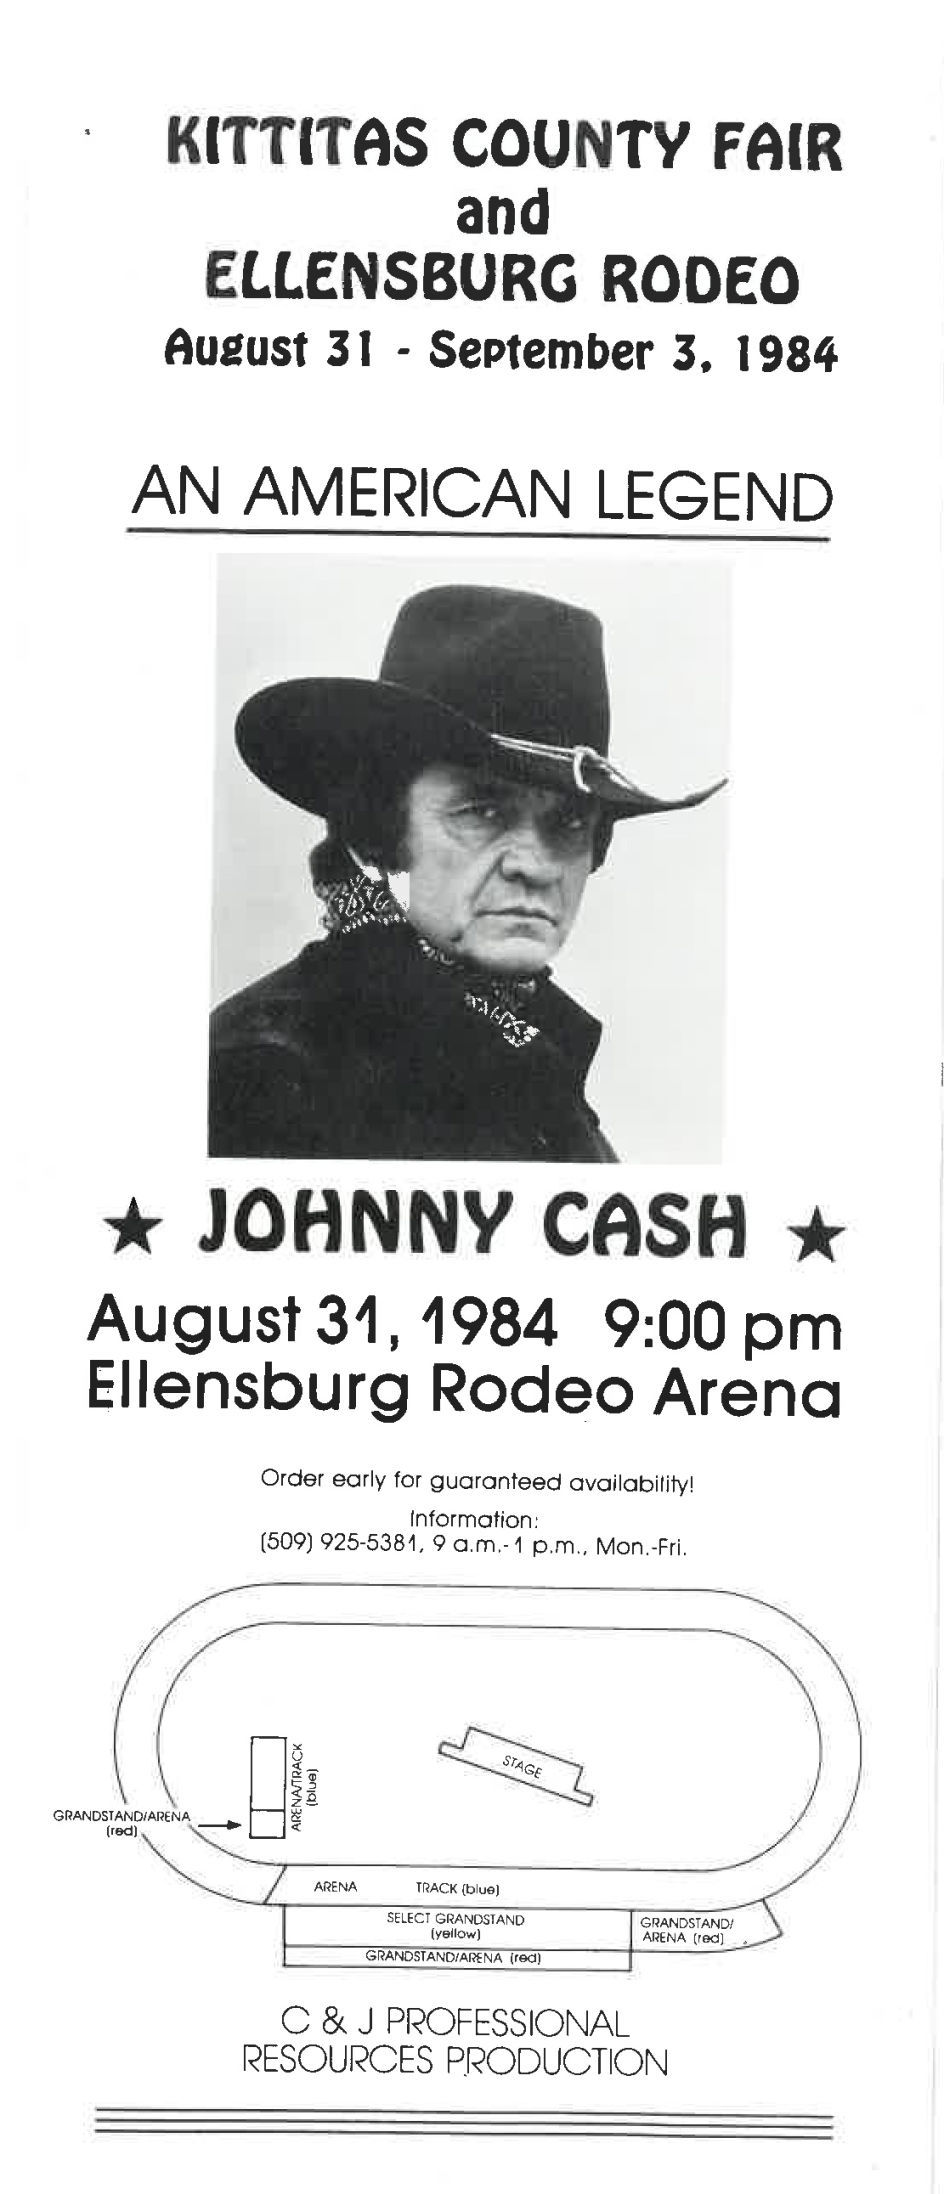 Johnny Cash Ellensburg Rodeo